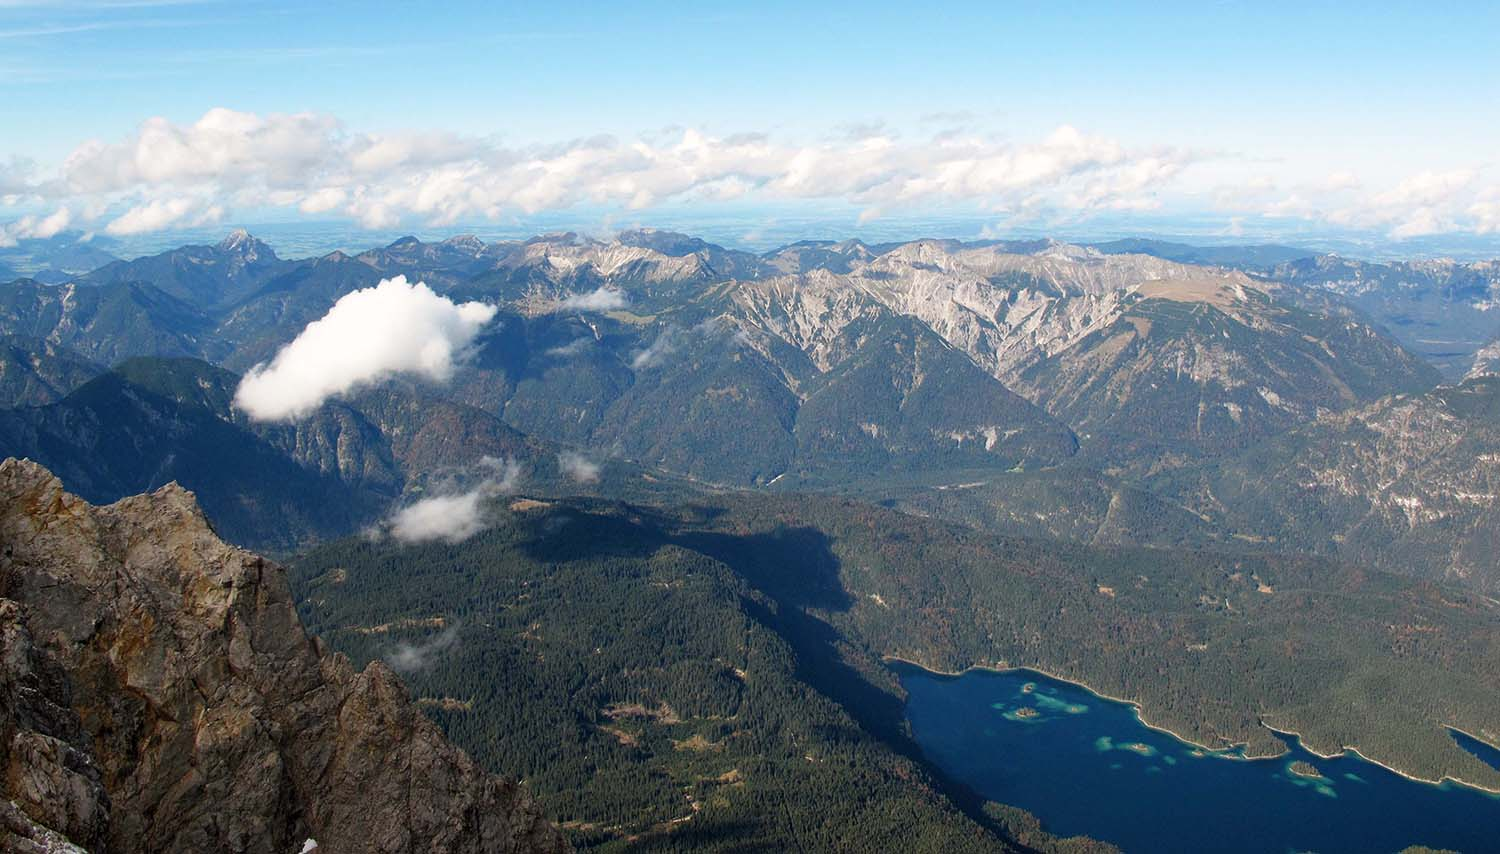 The view from the Zugspitze